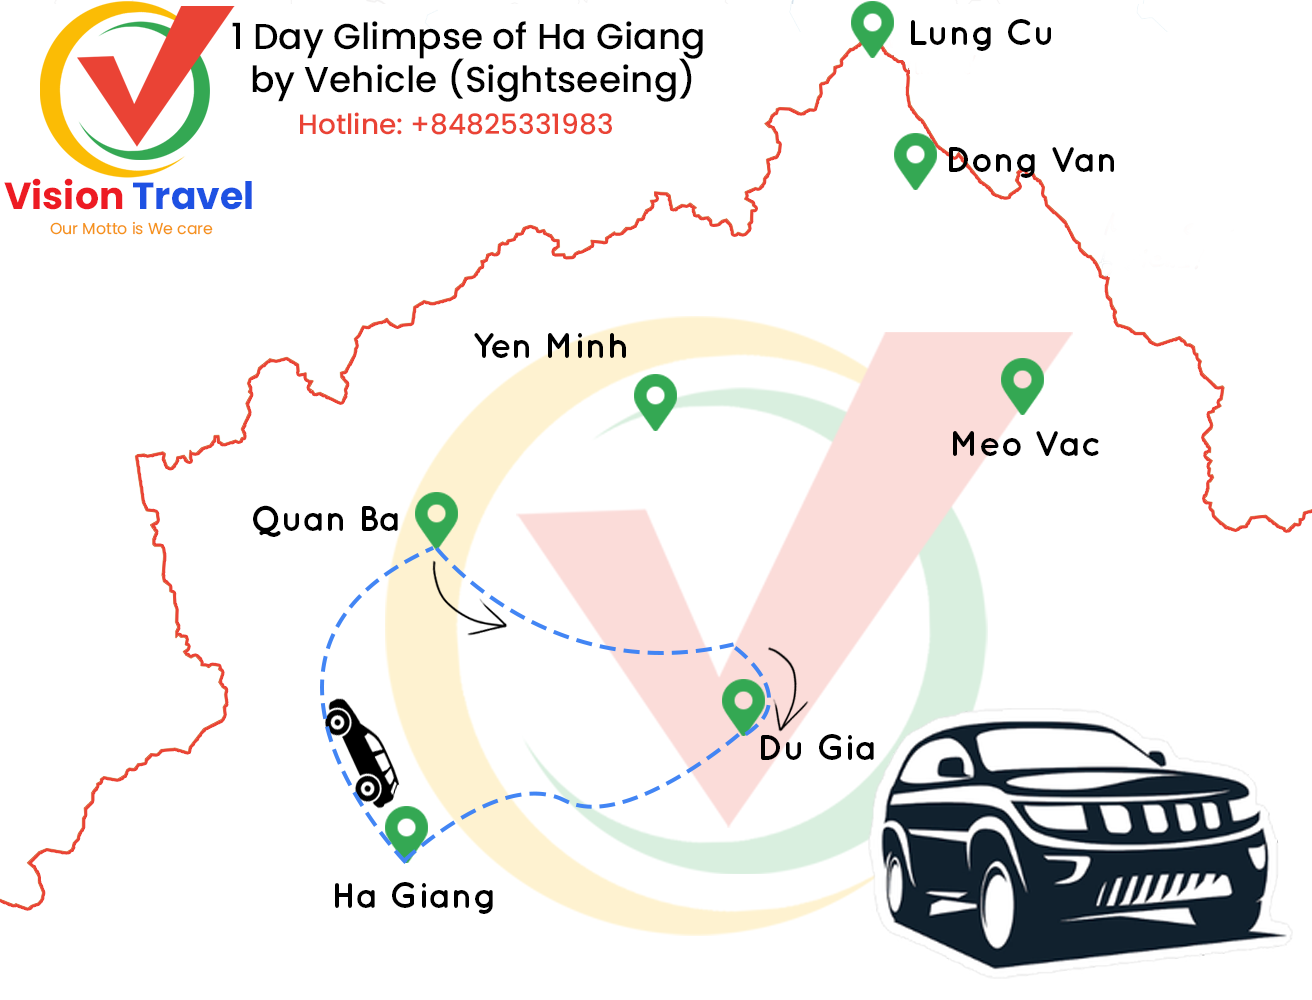 Travel map: 1 Day Glimpse of Ha Giang by Vehicle (Sightseeing)